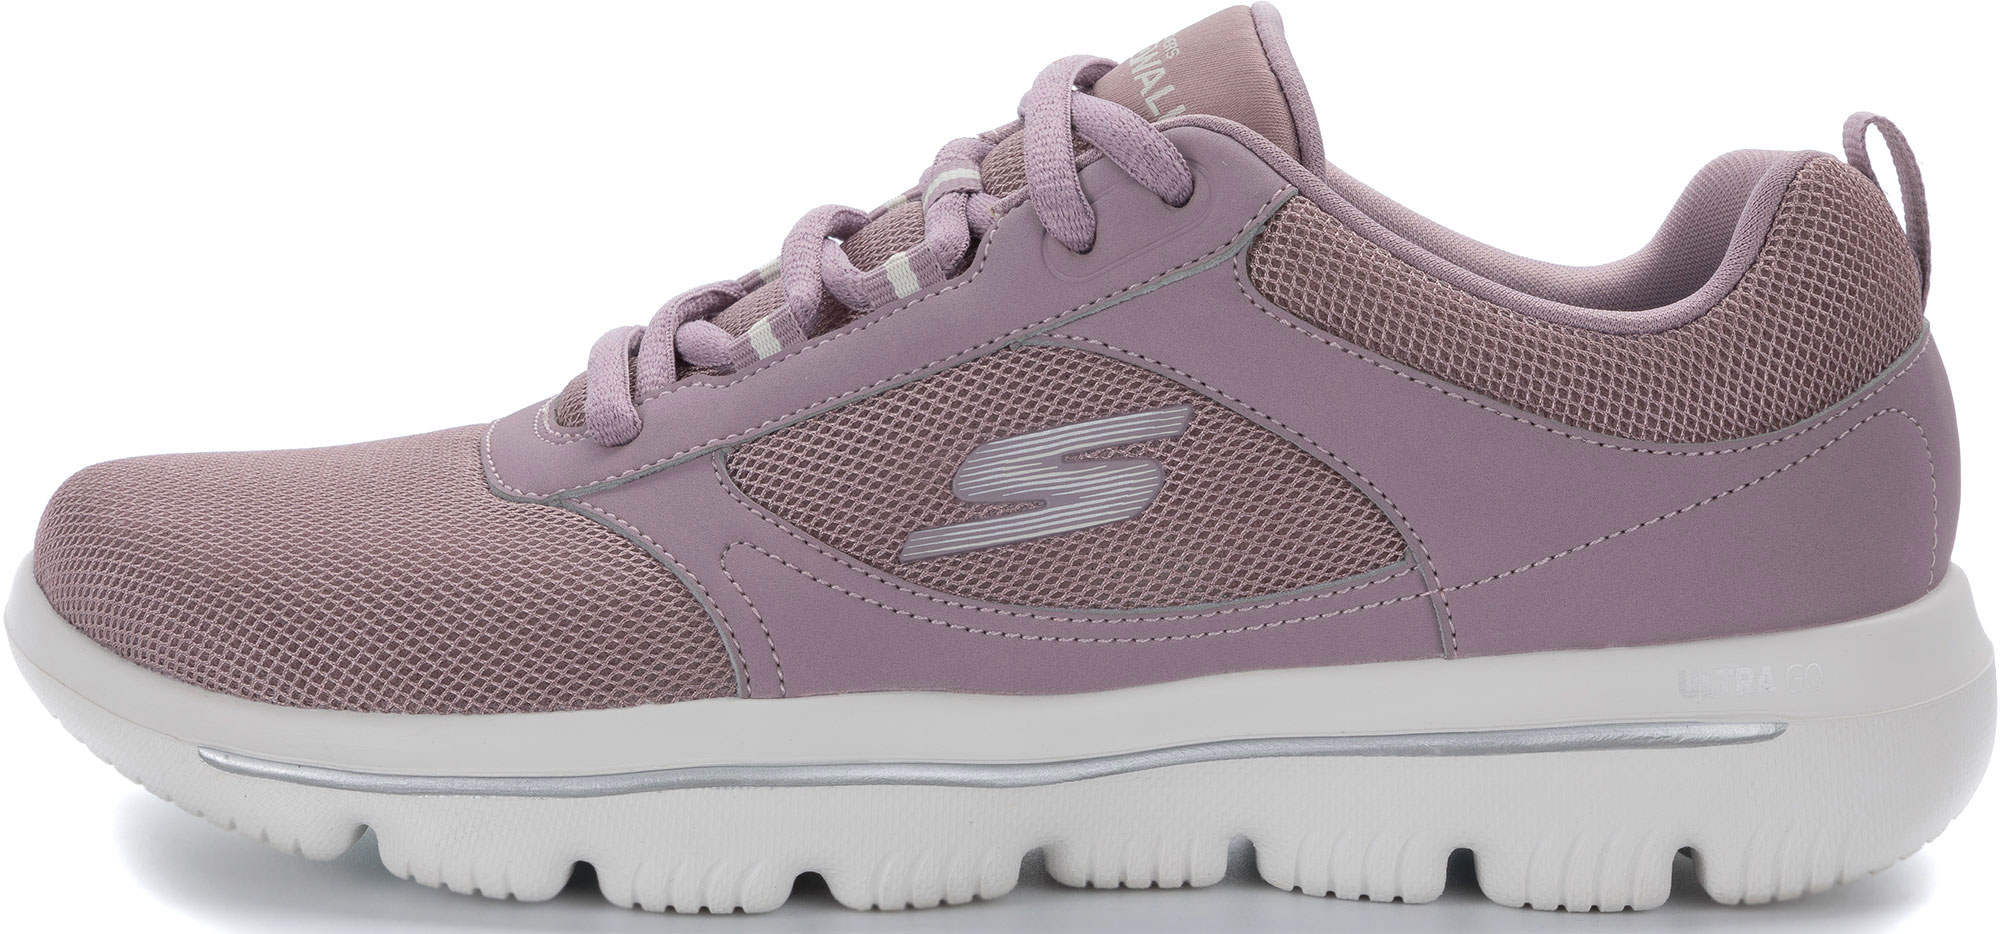 Skechers Кроссовки женские Skechers Go Walk Evolution Ultra-Enhan, размер 41